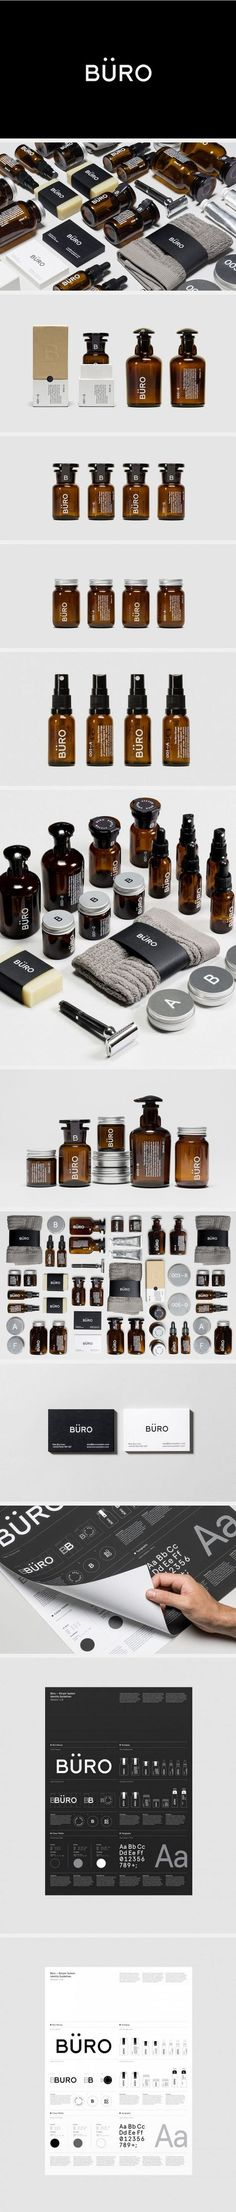 BURO Men's Cosmetic Branding and Packaging by SocioDesign | Fivestar Branding Agency – Design and Branding Agency & Inspiration Gallery